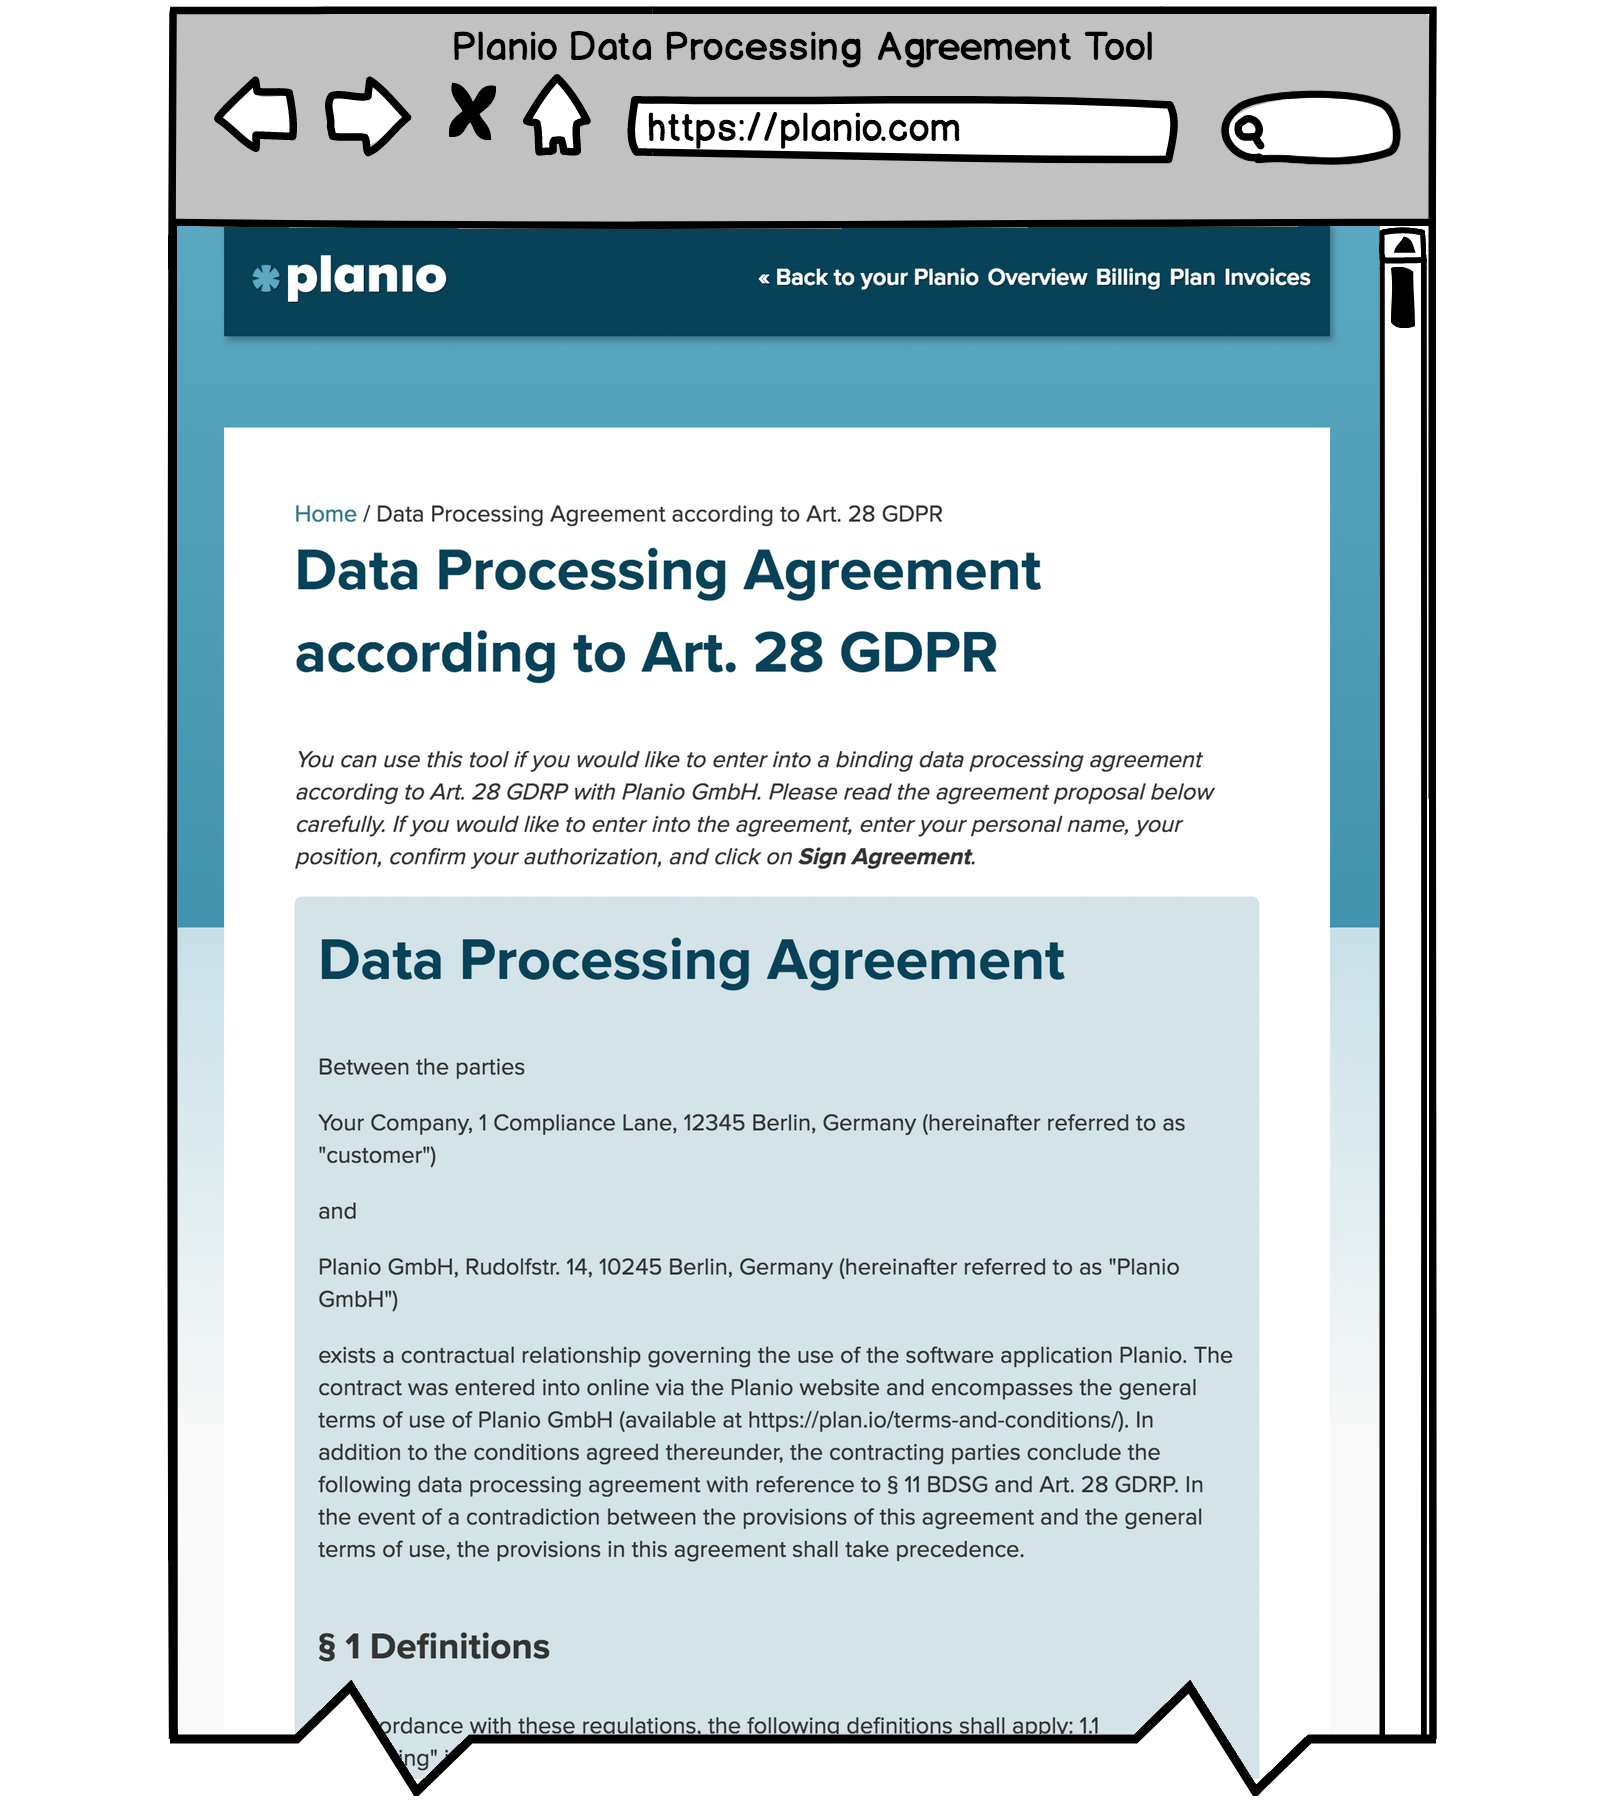 Screenshot of Planio's Data Processing Agreement Tool